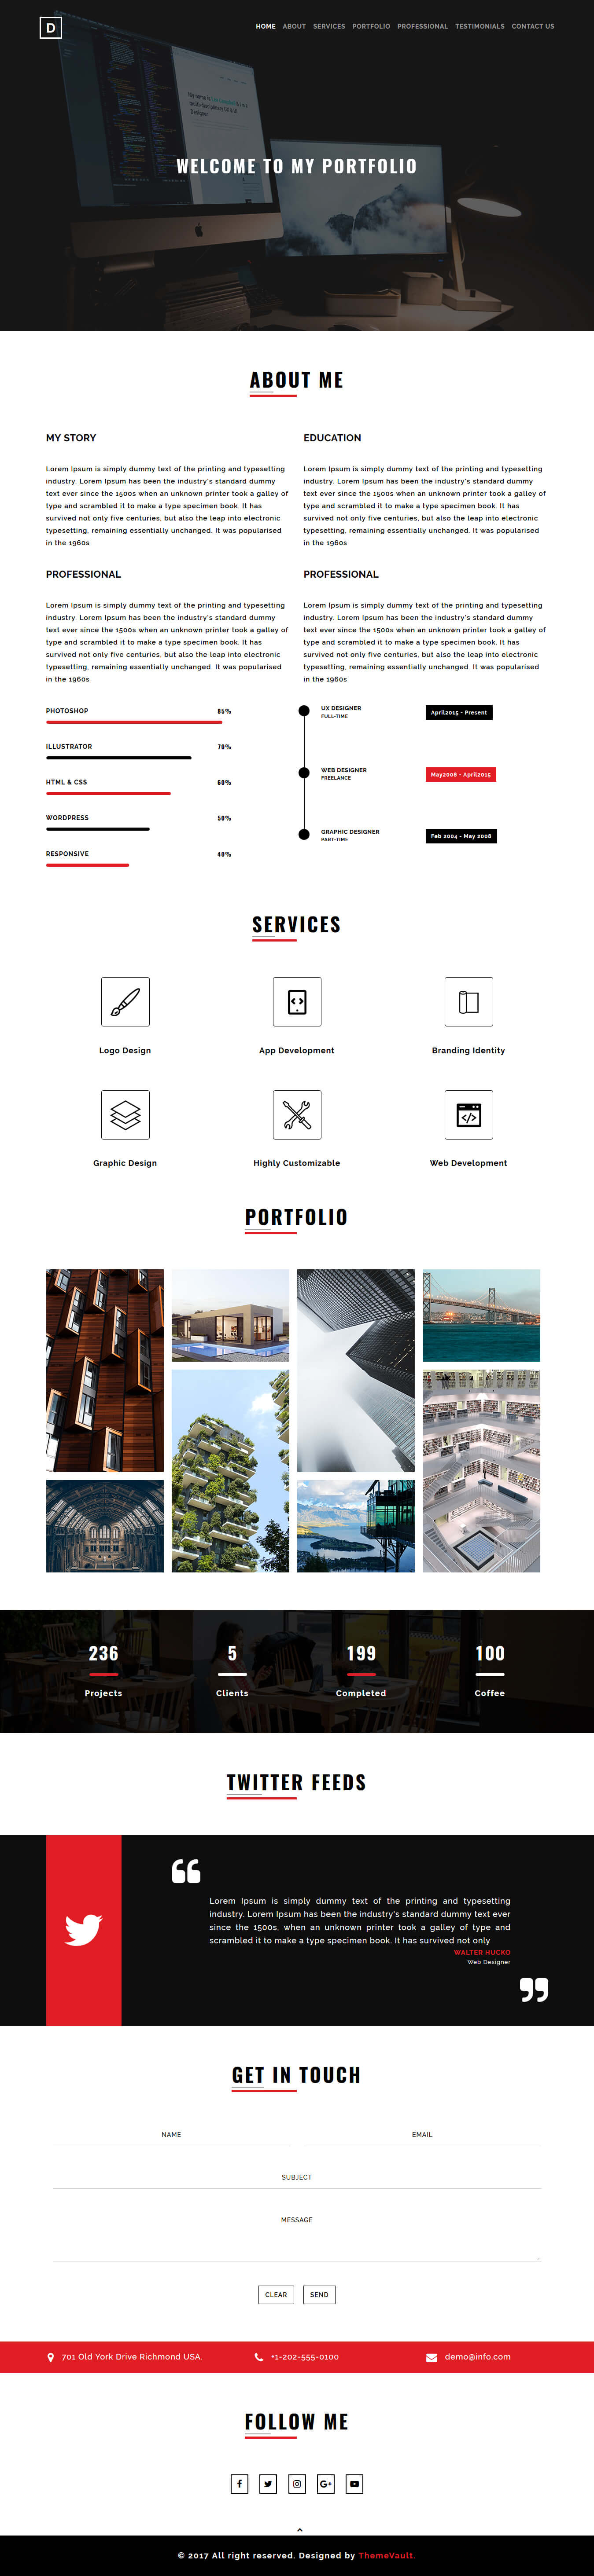 free responsive html5 website template | Free HTML Website Templates ...